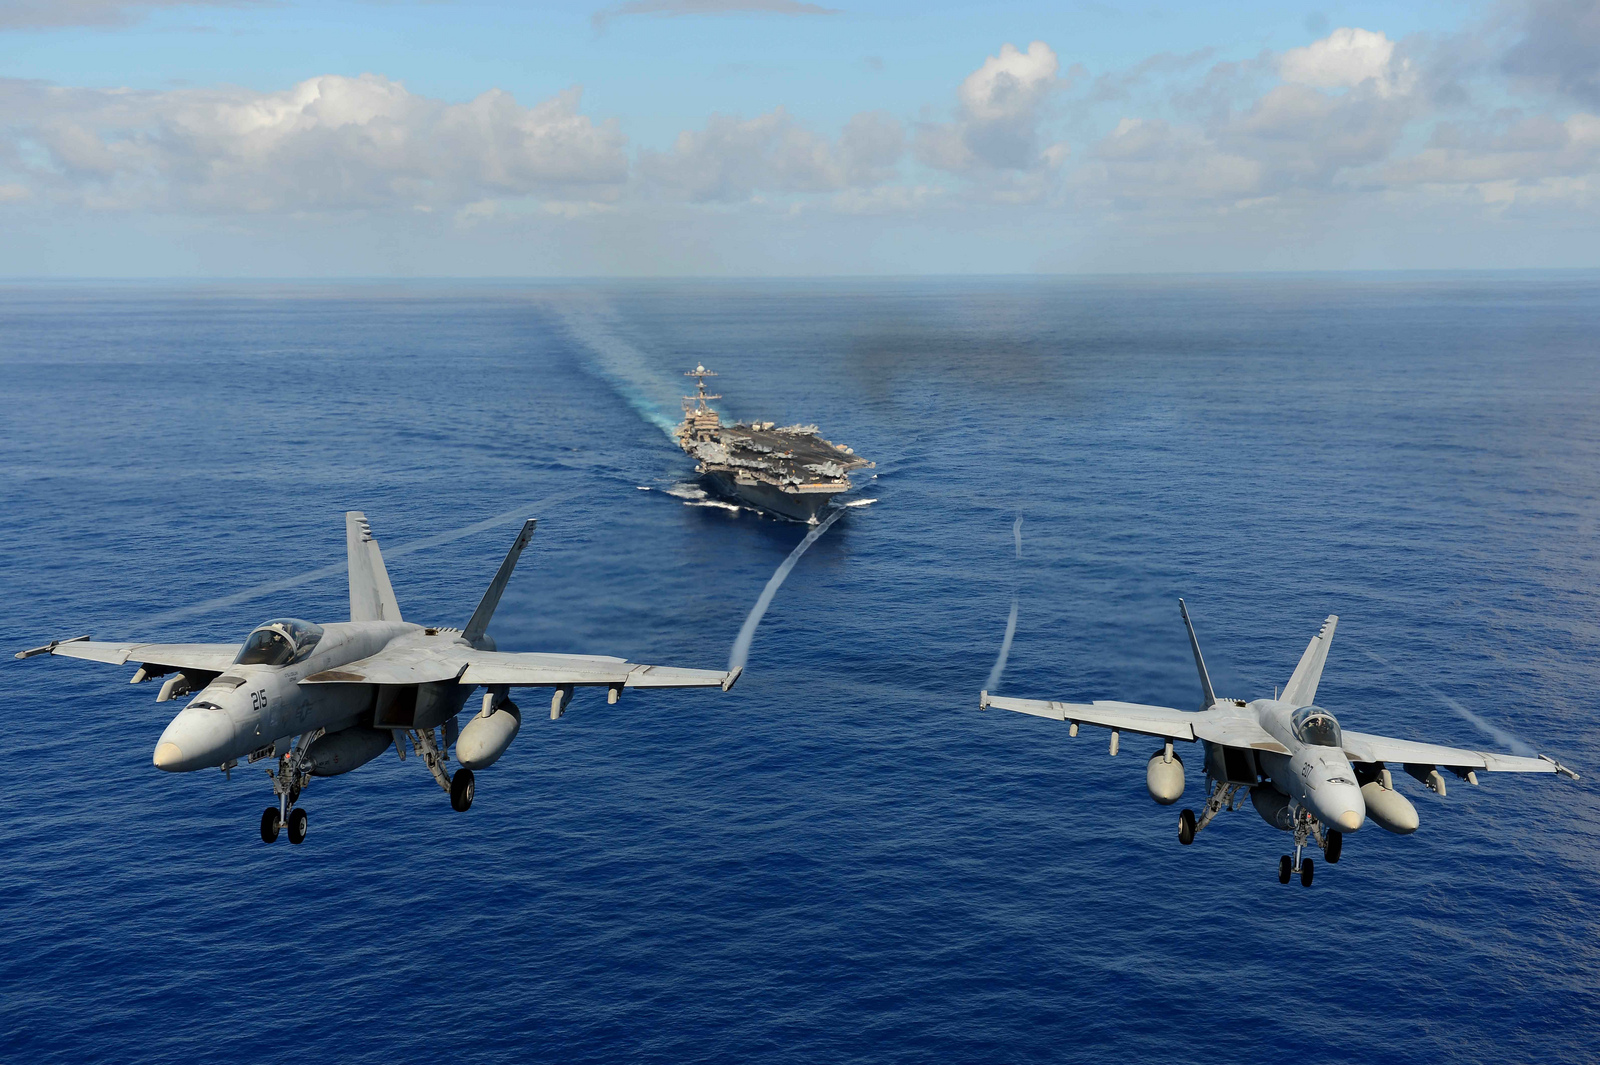 F-18 E Super Hornet aircraft taking off; Source - Net.